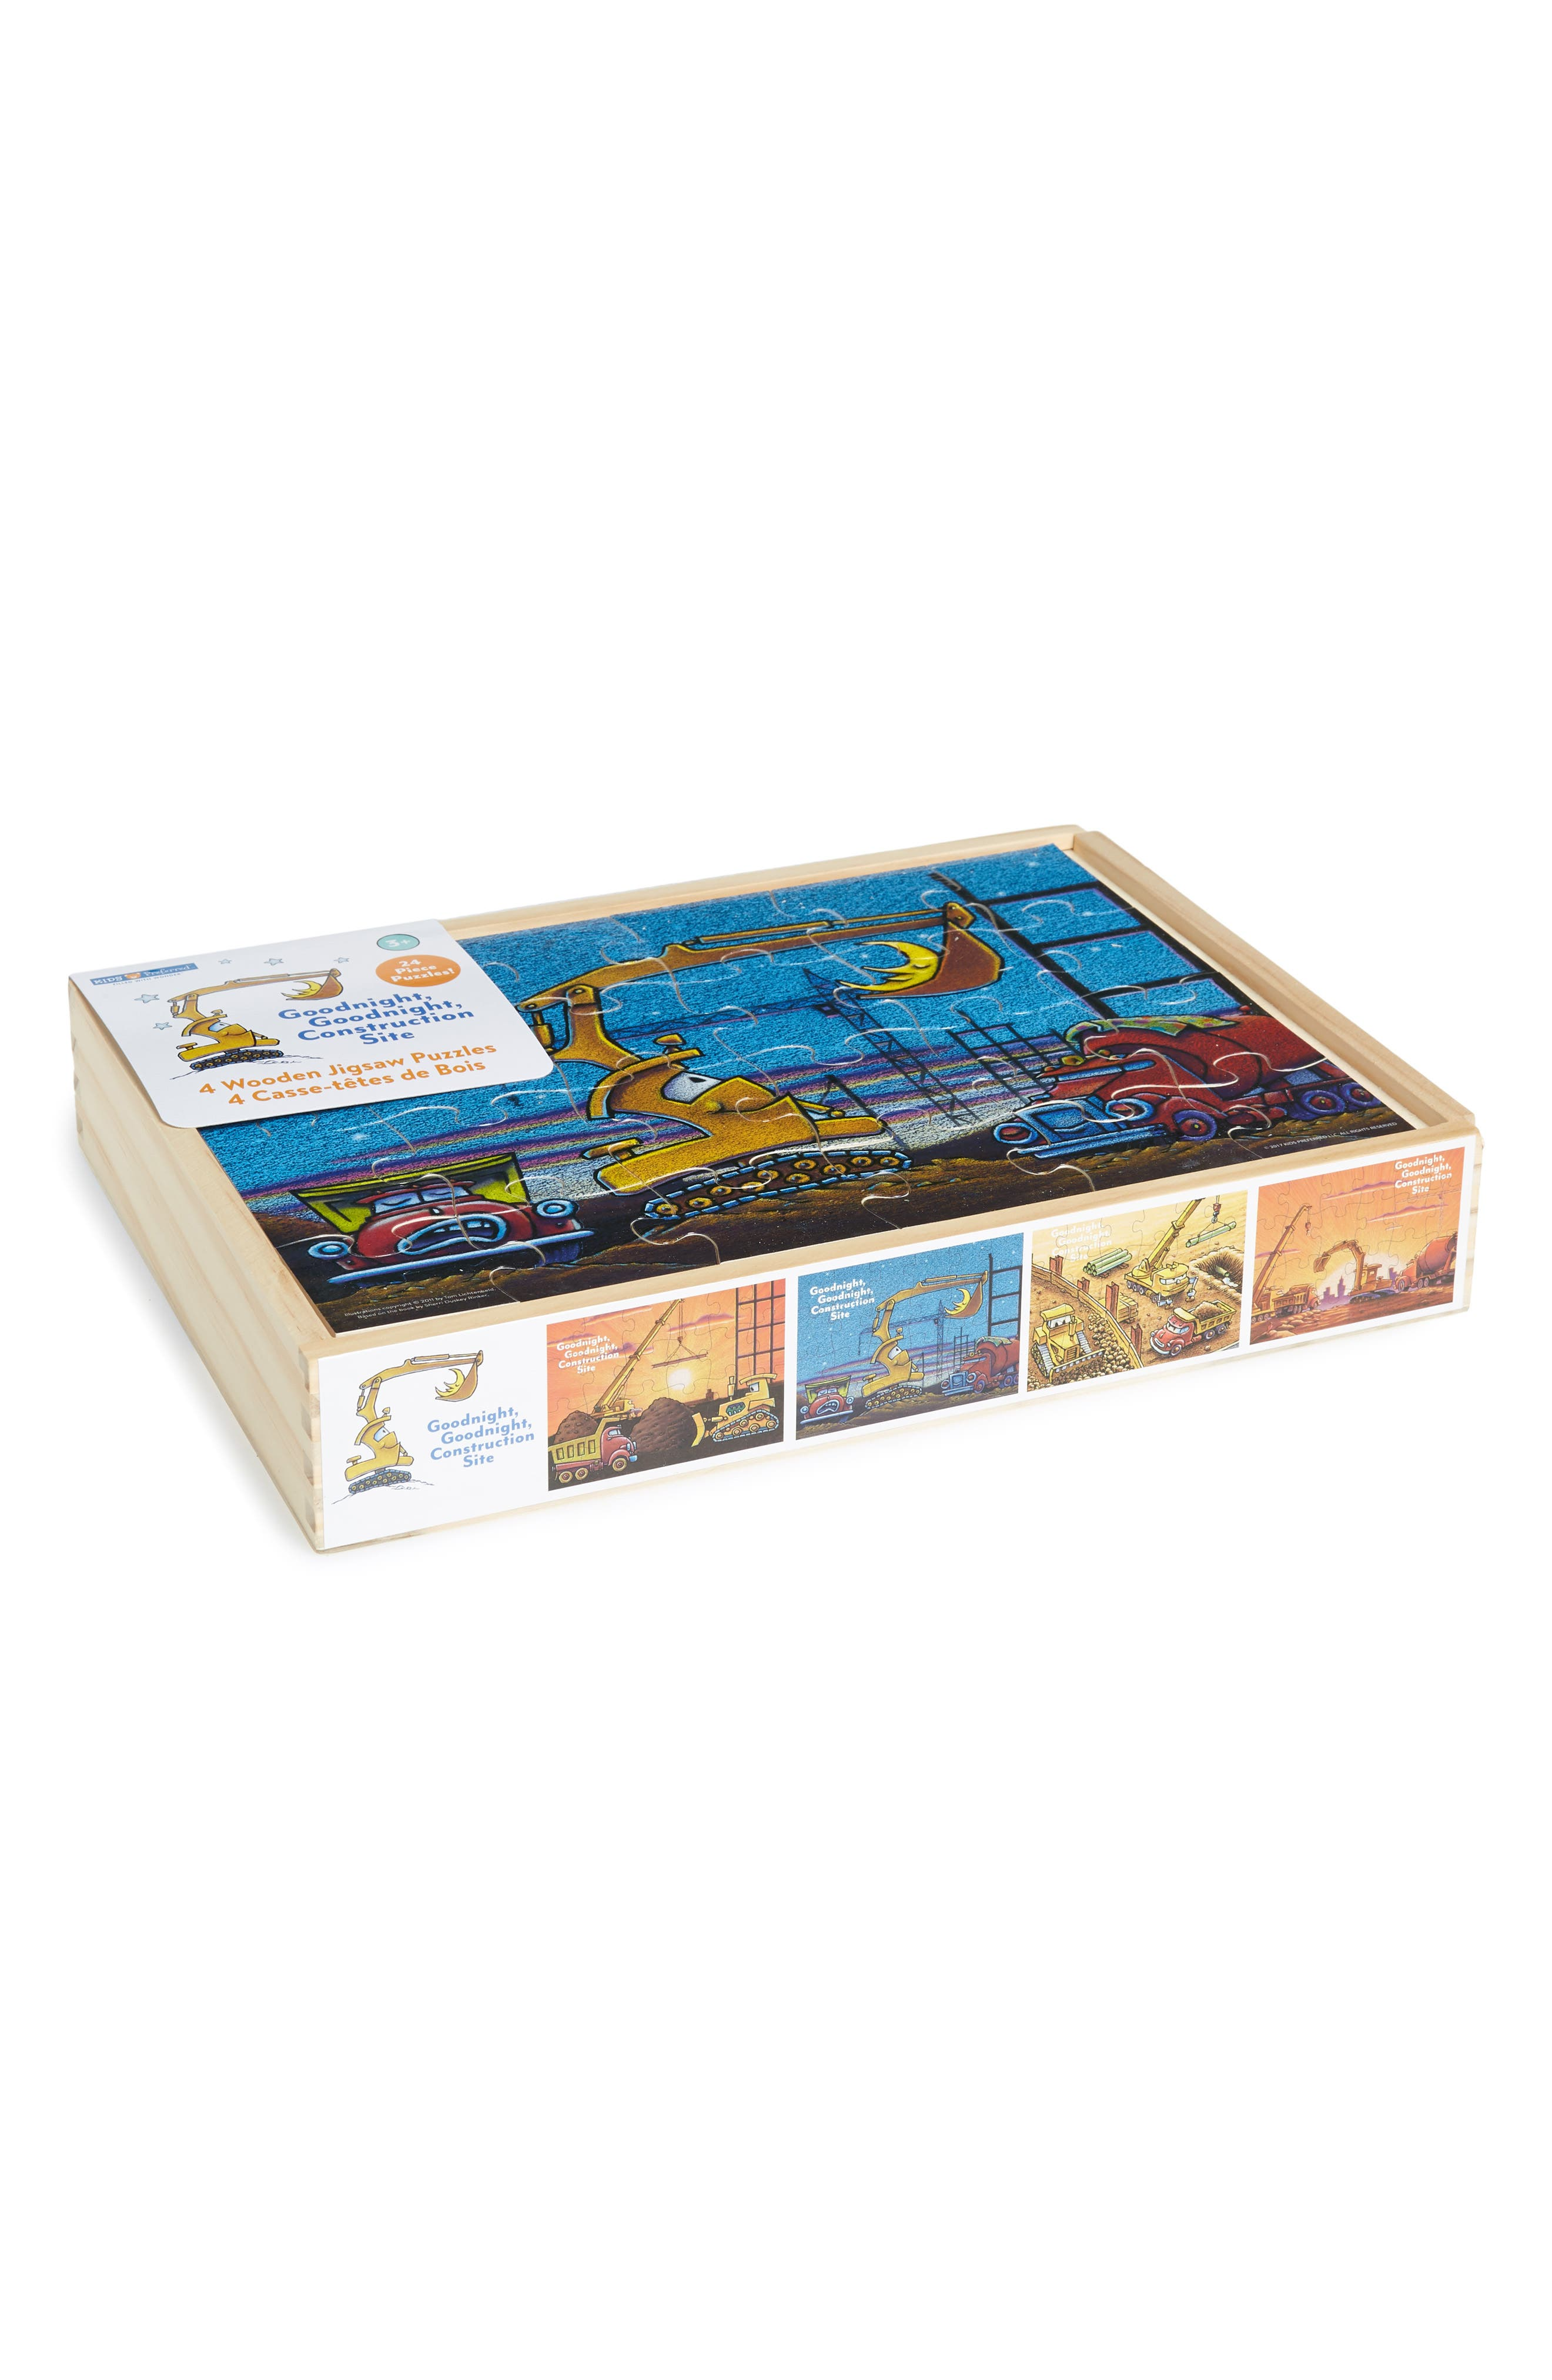 Toddler Kids Preferred Set Of 4 Goodnight Goodnight Construction Site 24Piece Wooden Puzzles